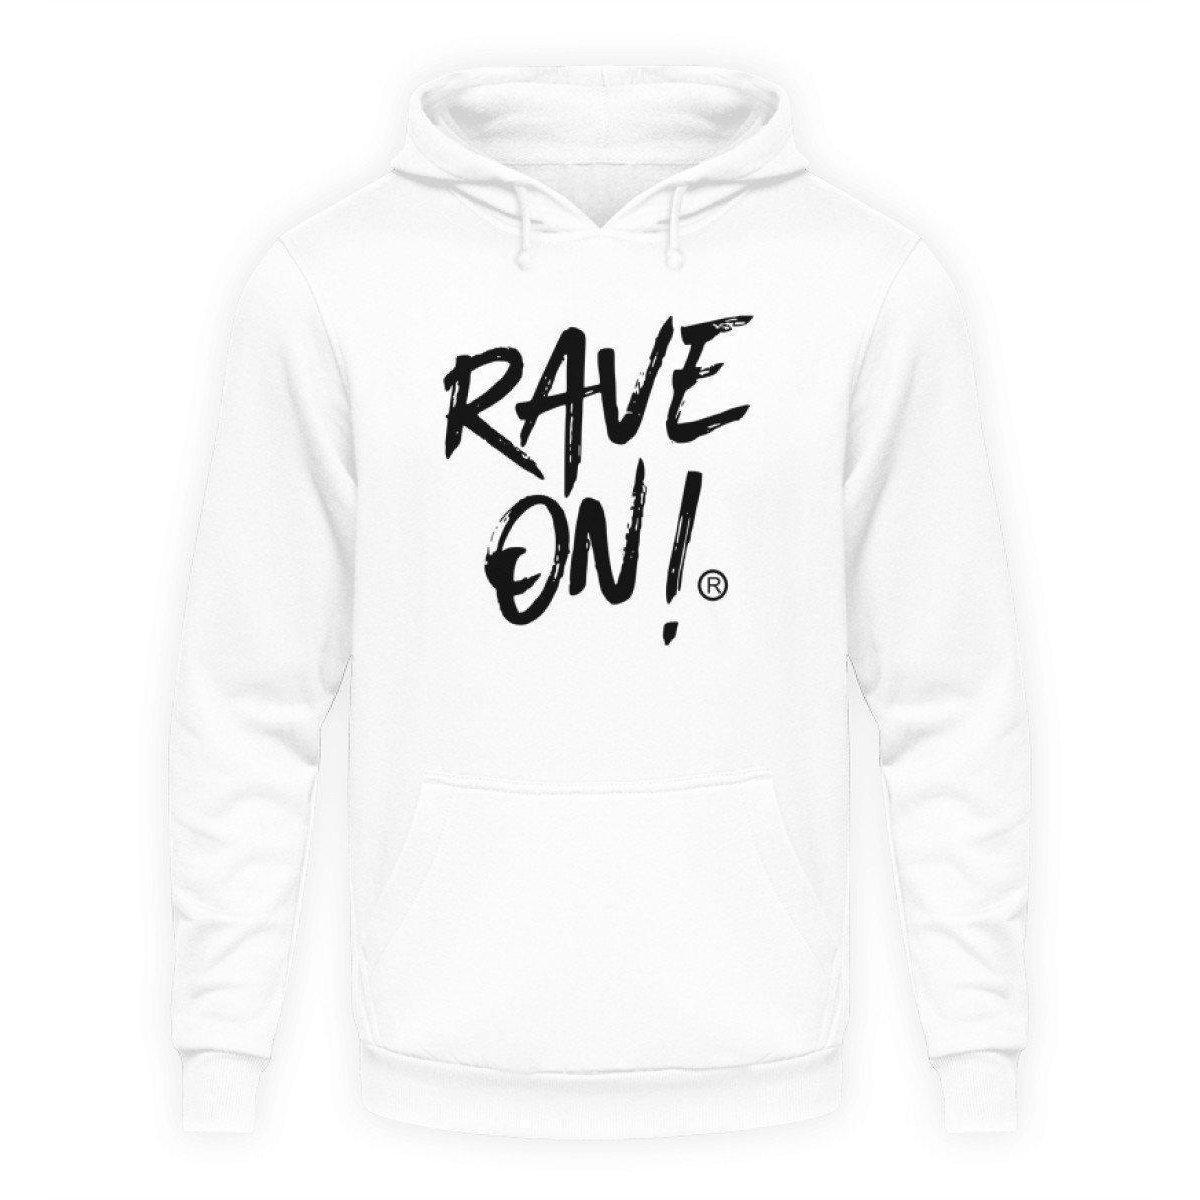 Rave On!® Light Collection - Unisex Hooded Sweater Hoodie Unisex Hoodie Arctic White / L - Rave On!® the club & techno scene shop for cool young fashion streetwear style & fashion outfits + sexy festival 420 stuff